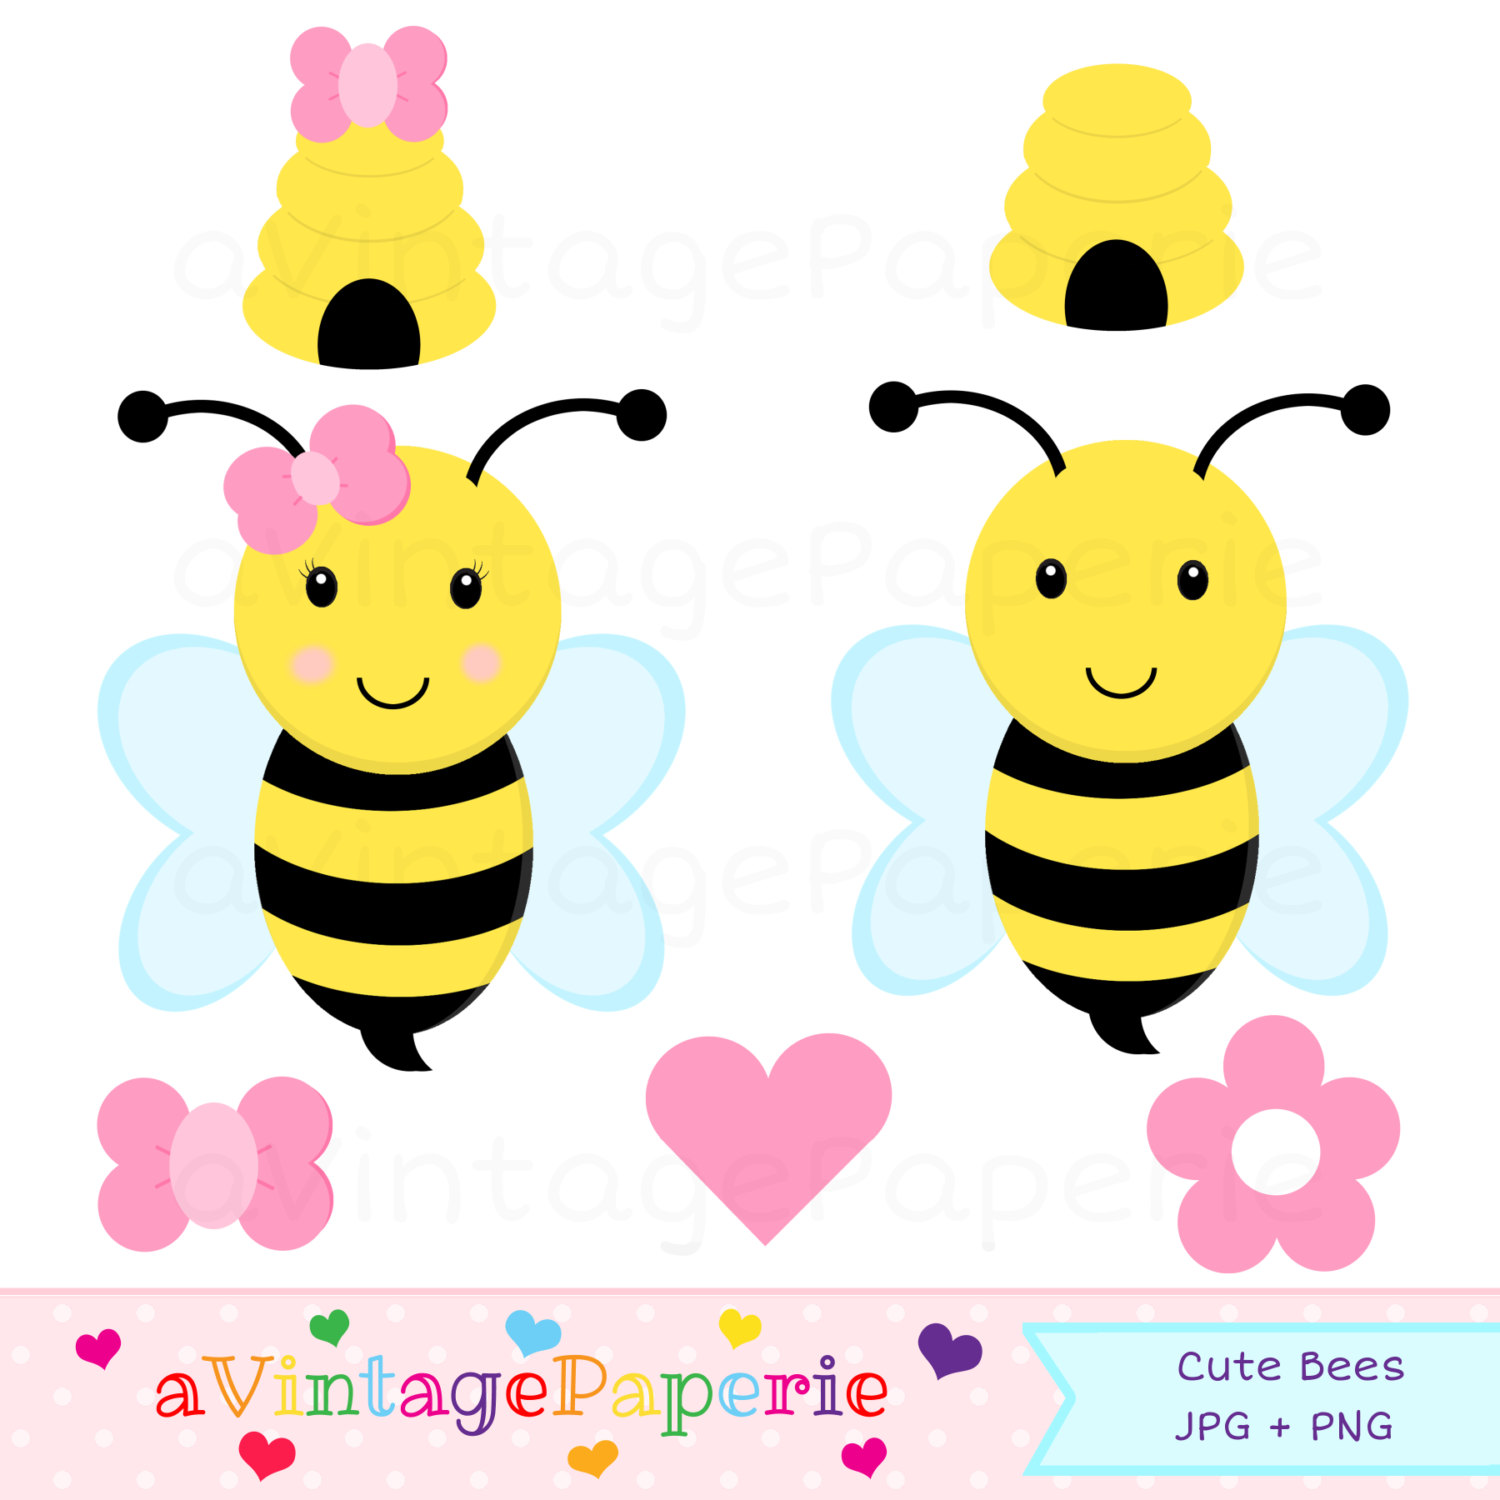 Free bee clipart for commercial use image free stock Free bee clipart for commercial use - ClipartFest image free stock